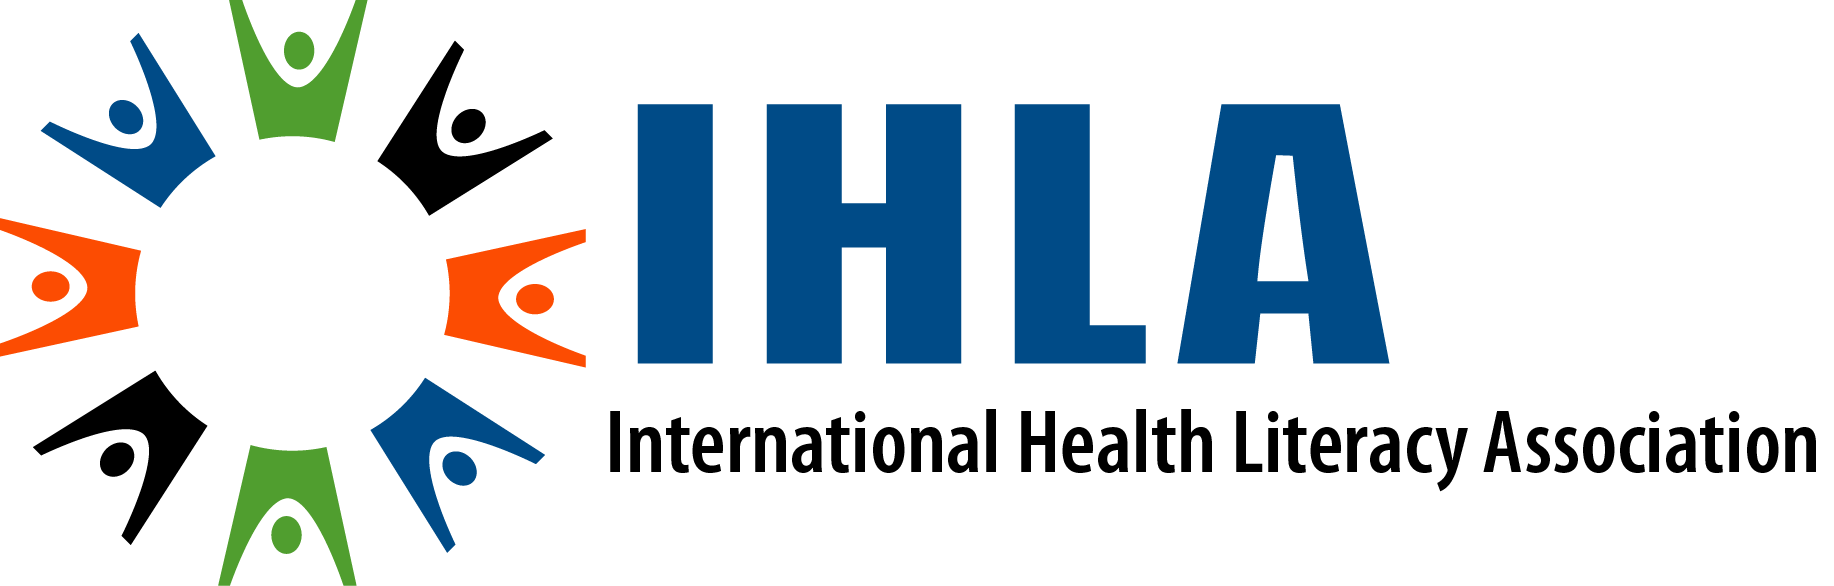 International Health Literacy Association